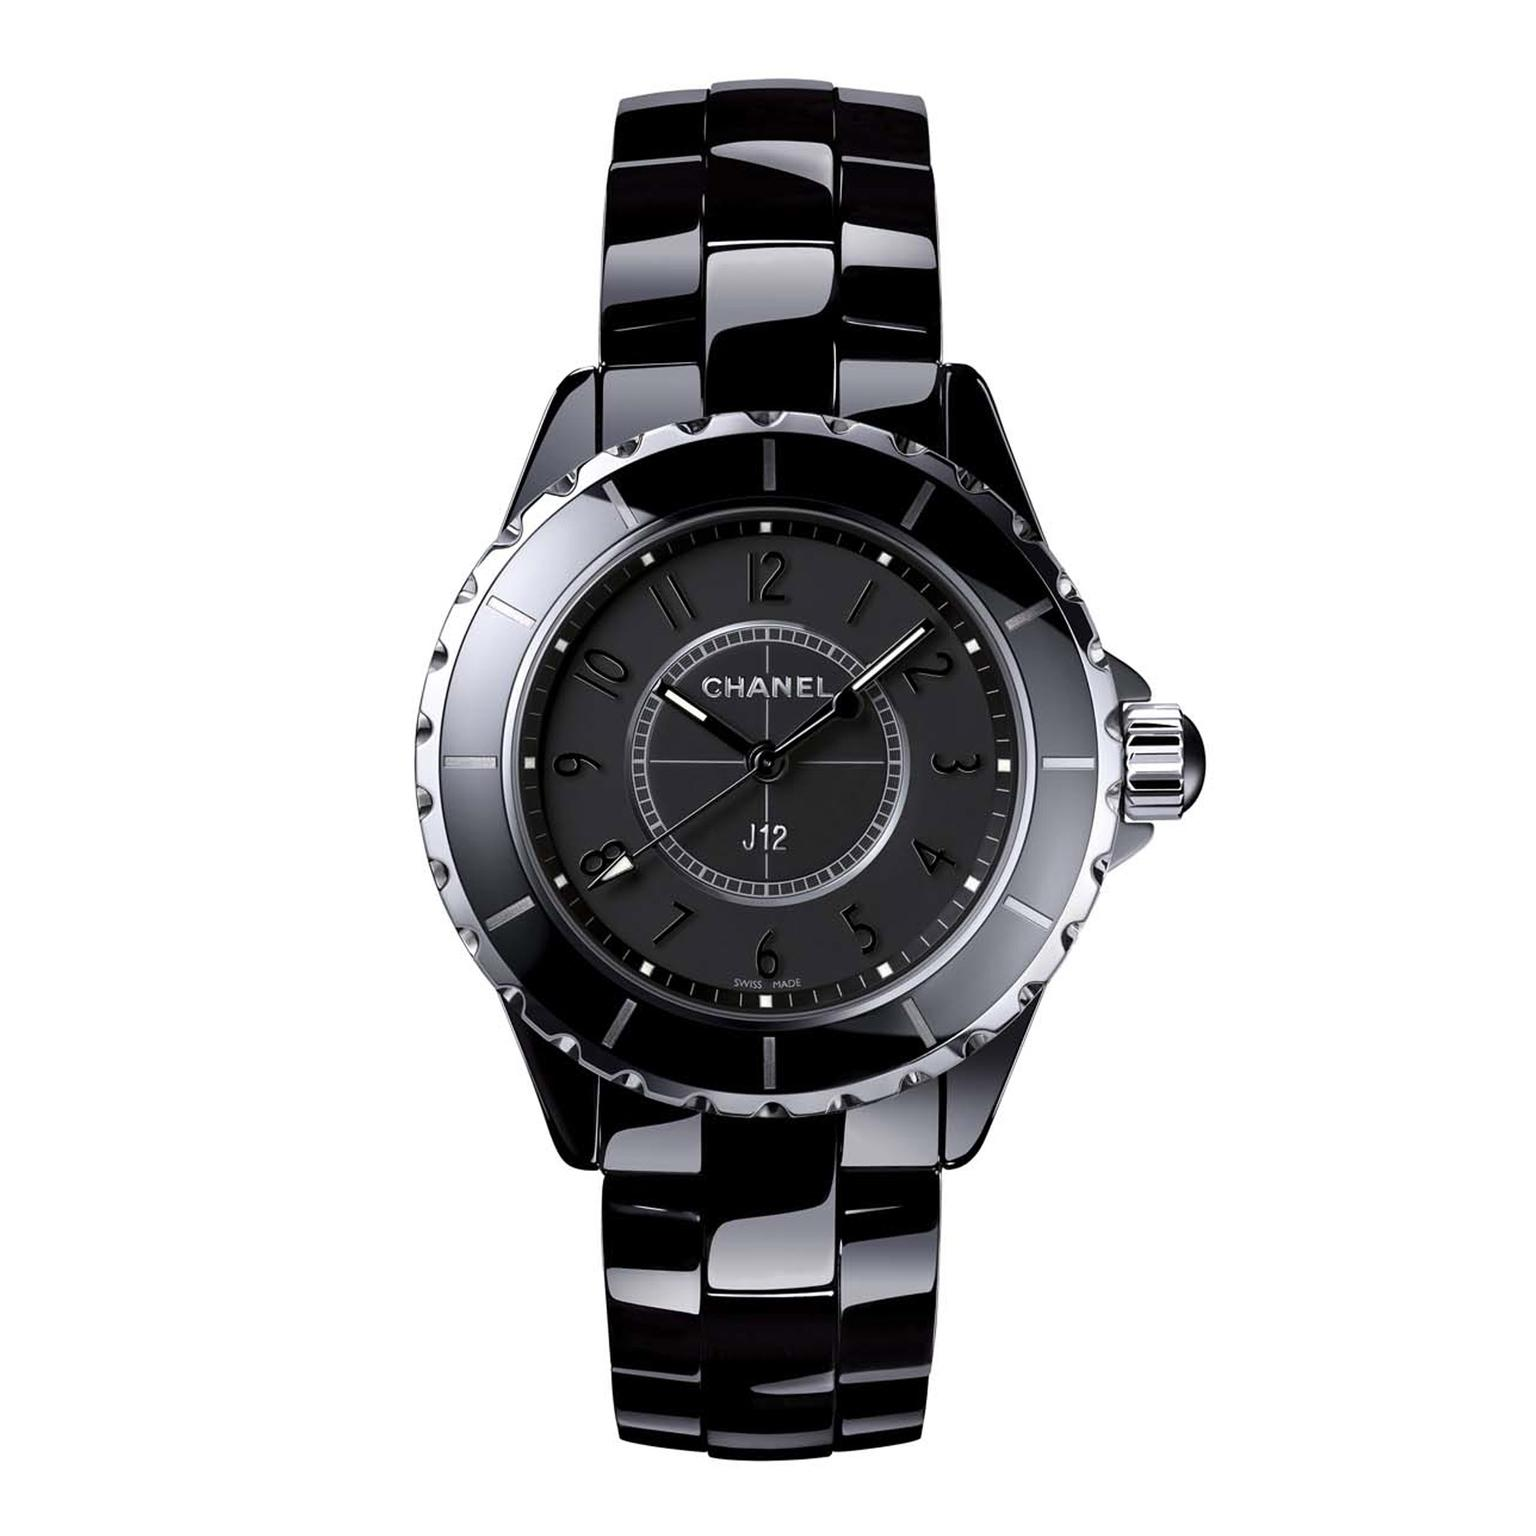 J12 Intense Black ceramic watch  6fbf079f5985